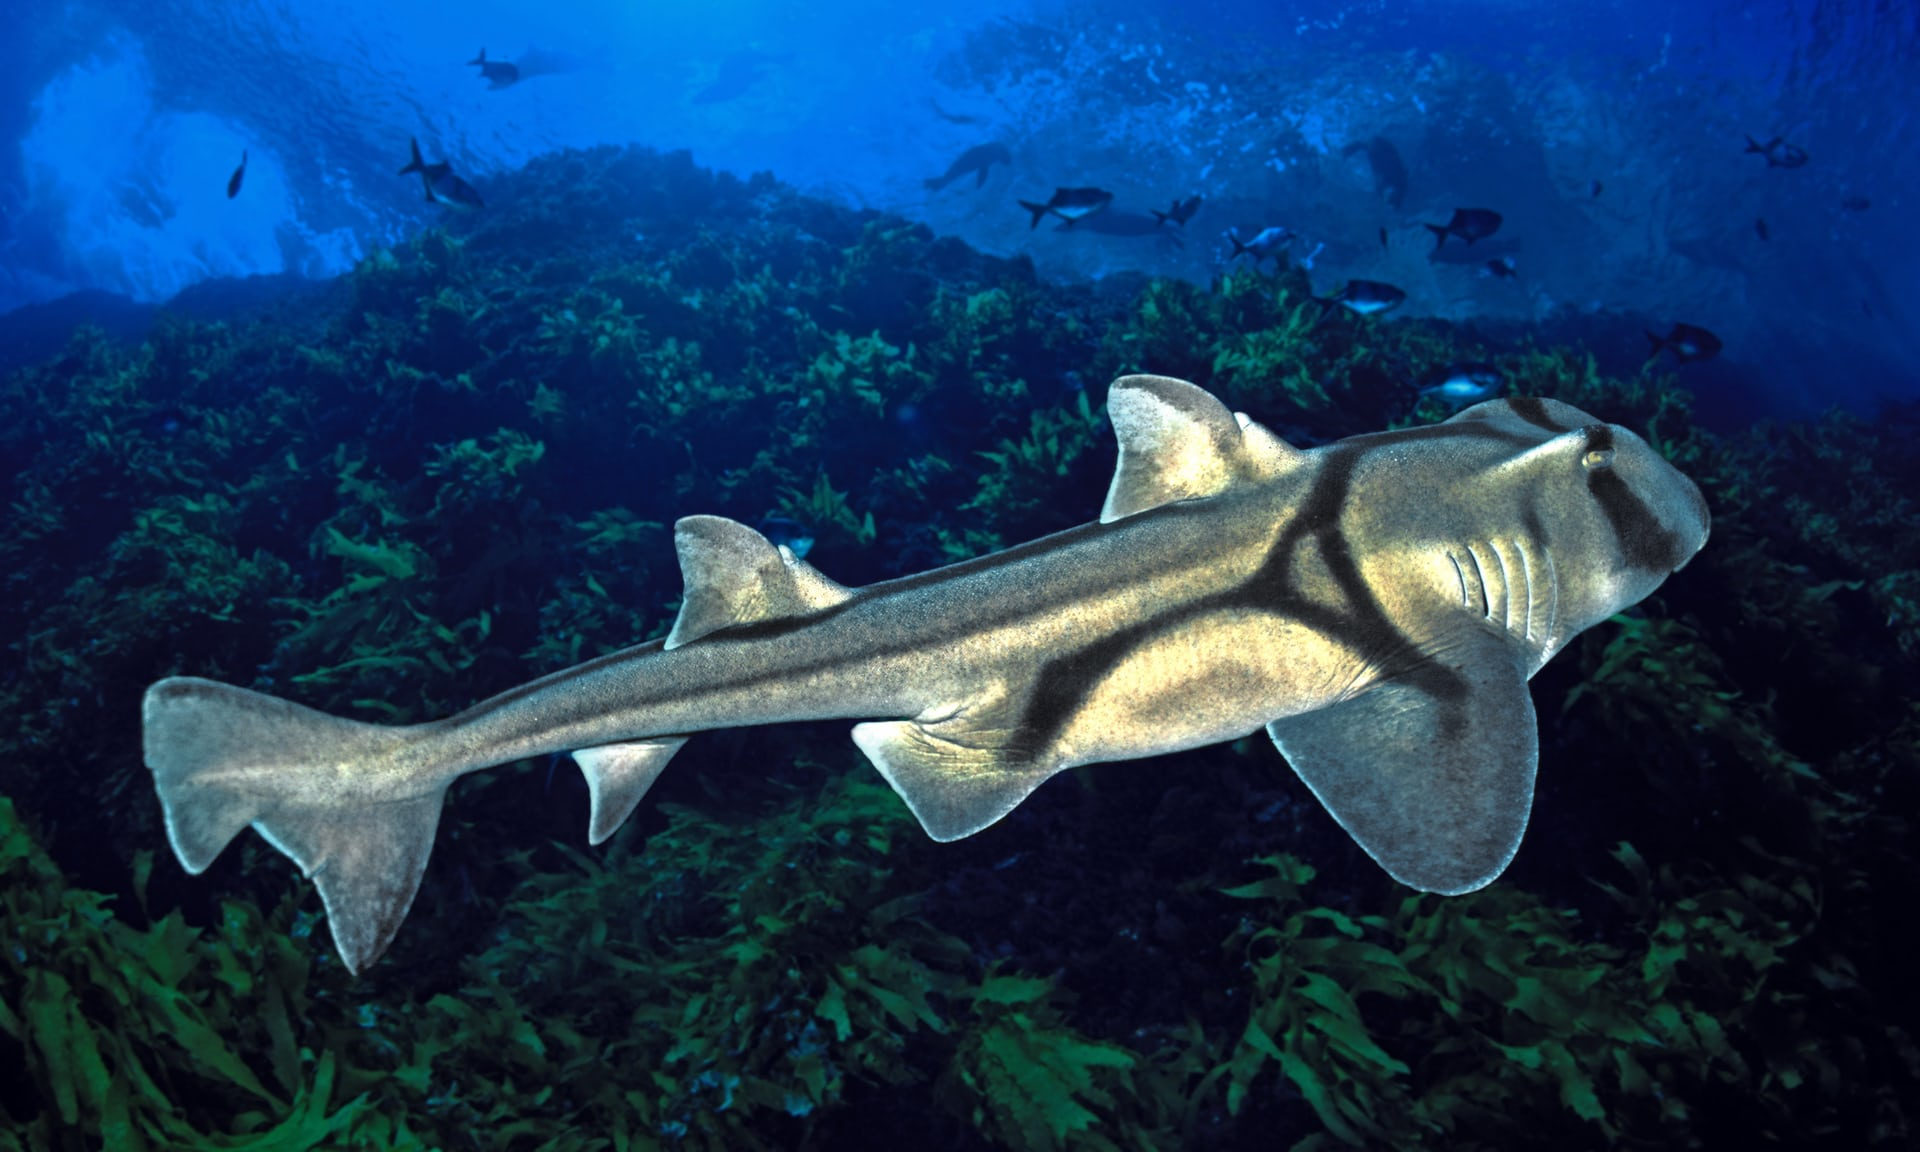 Sharks love jazz but are stumped by classical, say scientists